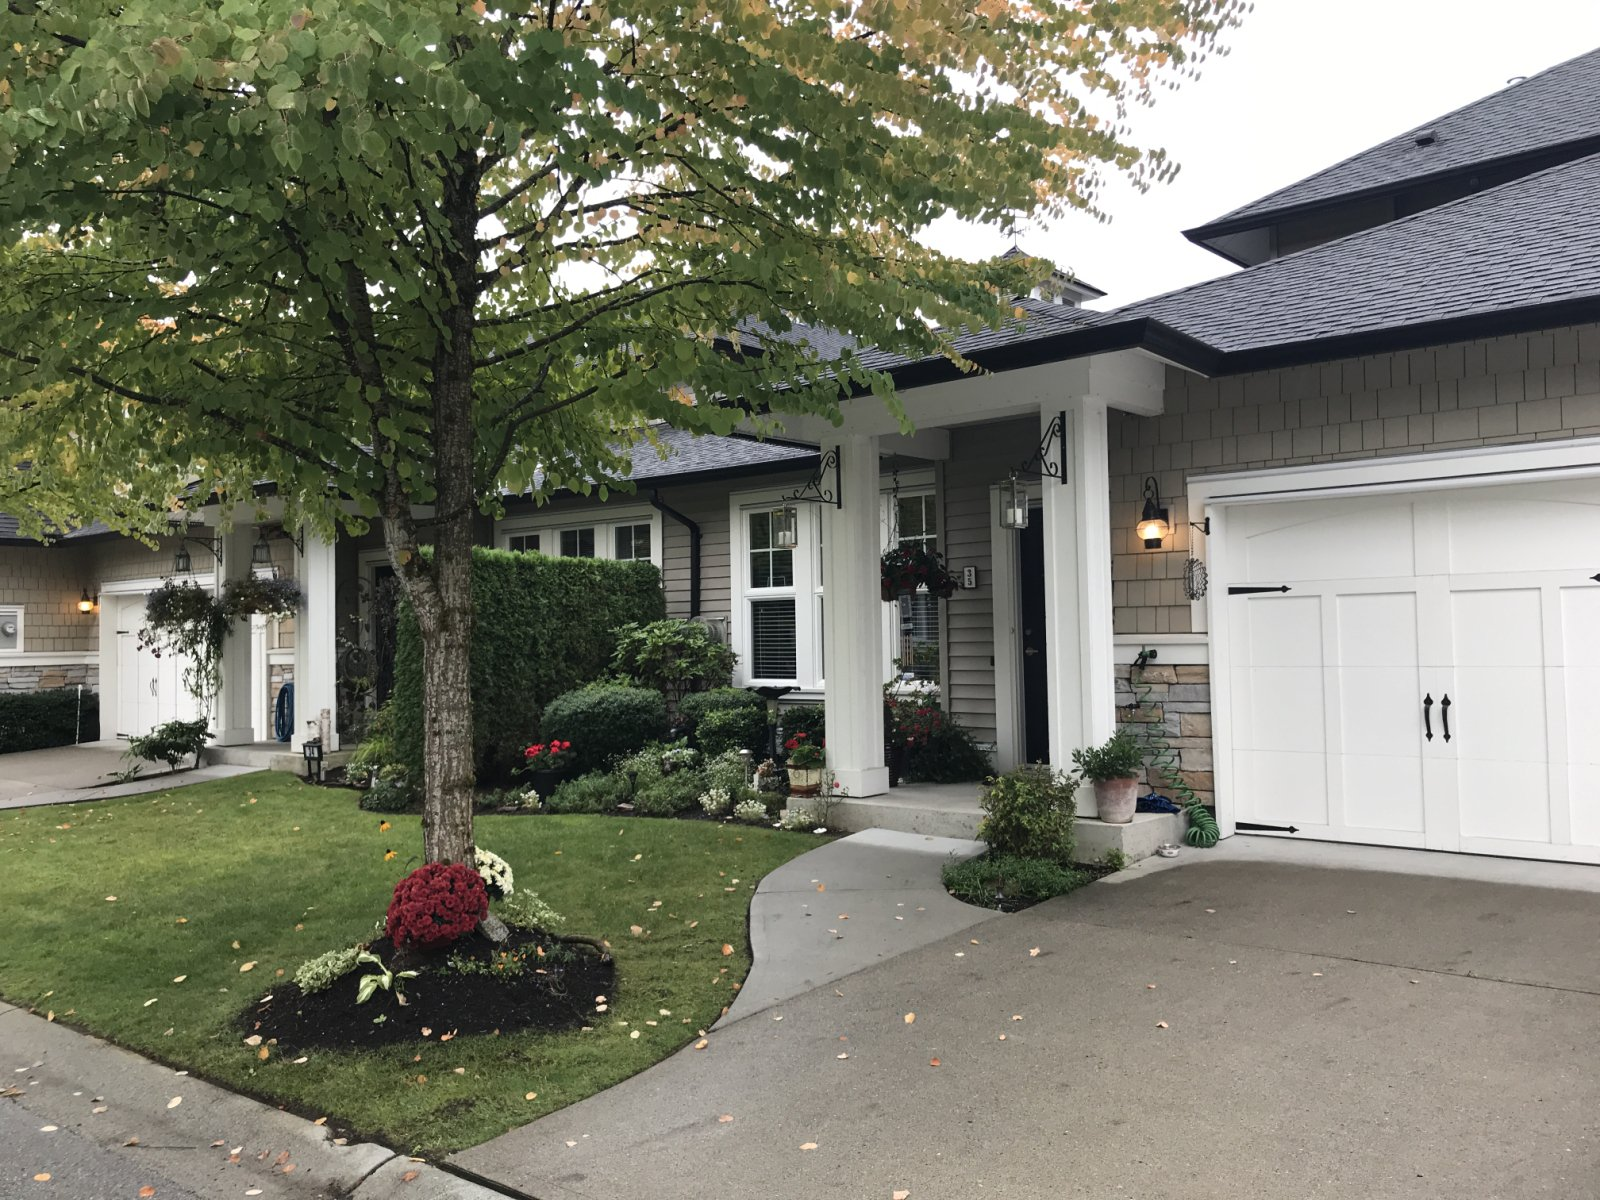 Main Photo: 35 - 19452 Fraser Way in Pitt Meadows: House for sale